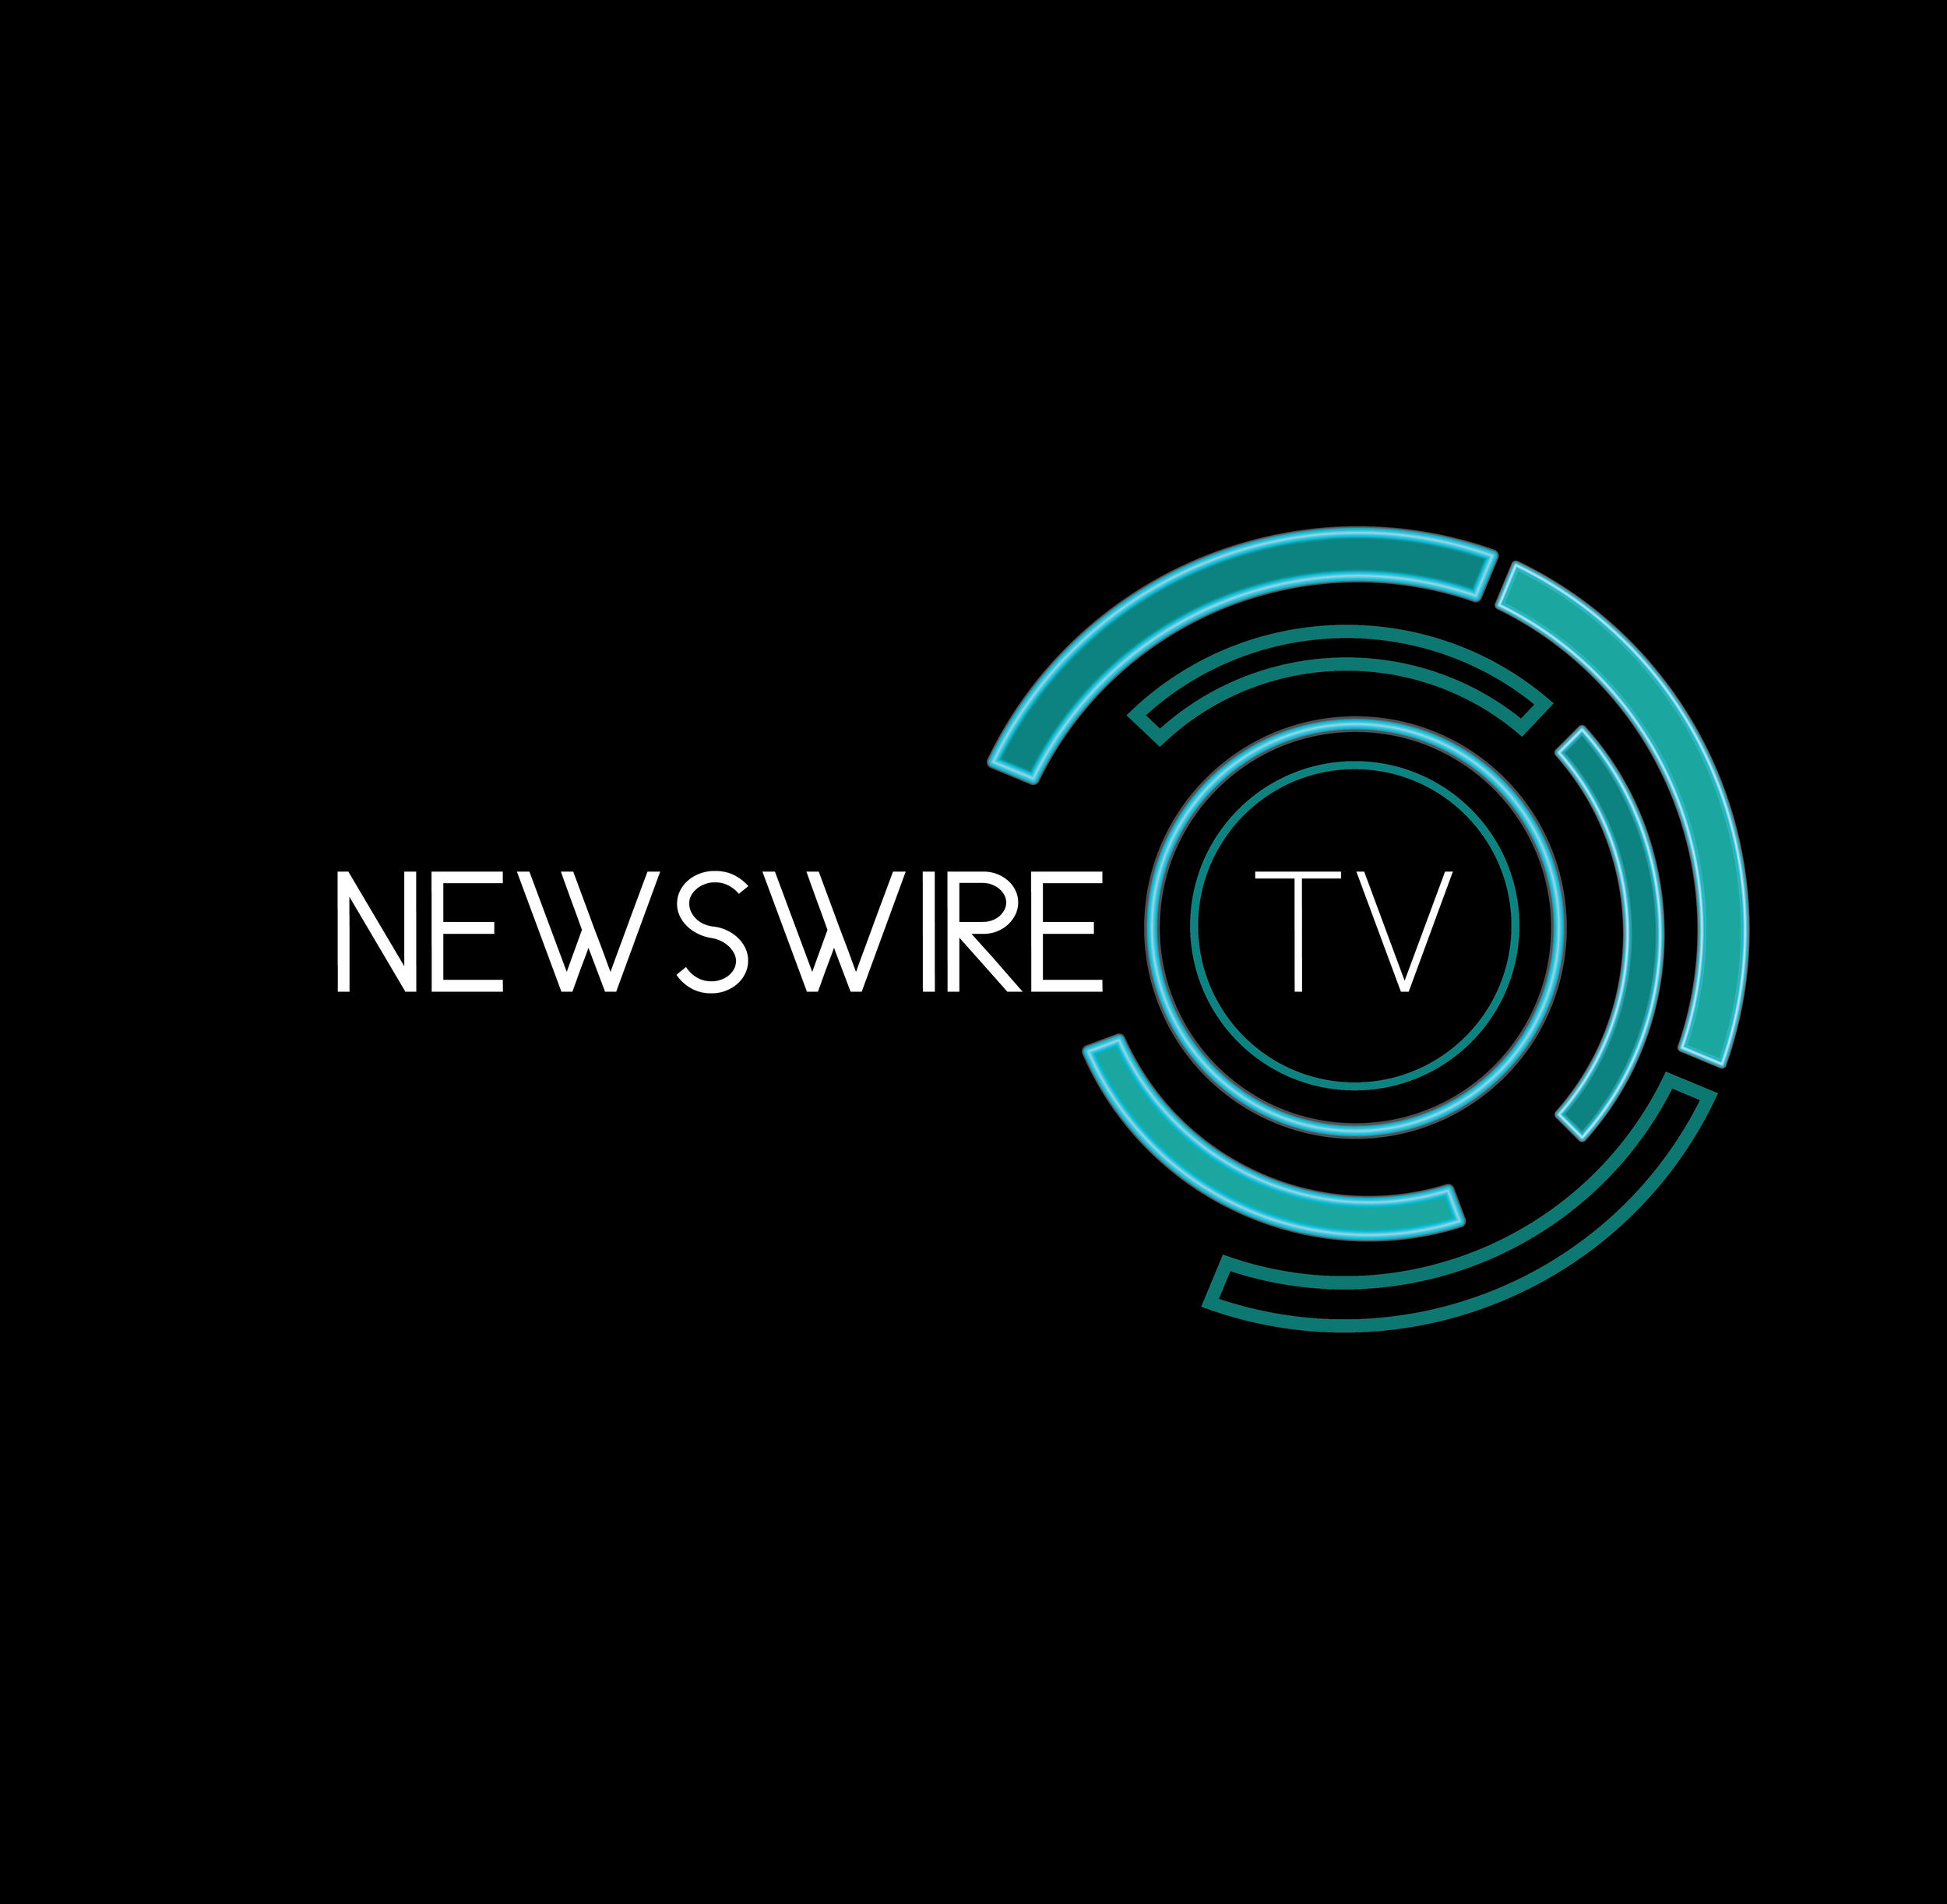 Newswire TV - Newswire TV is the part of MPS that covers all things news, including news stories, interviews, reviews etc!News packages are made every 2 weeks and posted to the MPS YouTube and website.Whether you're interested in camerawork, reporting, presenting, anything at all we'd love for you to join!